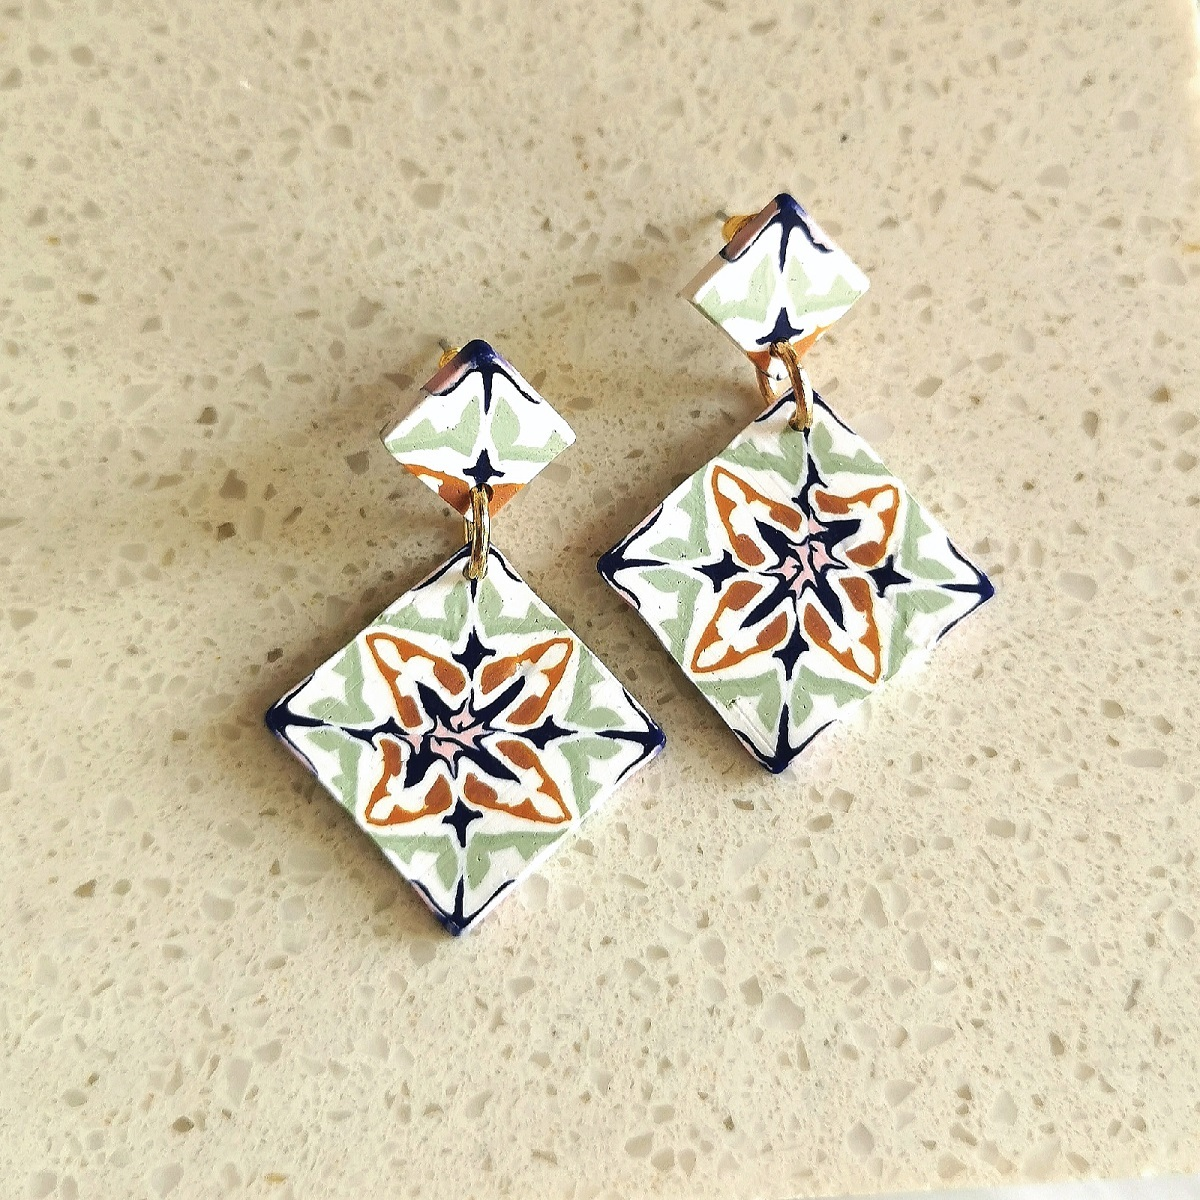 Item 7 - Either _ Or Design Prussian Blue Double Tile Earrings.jpg